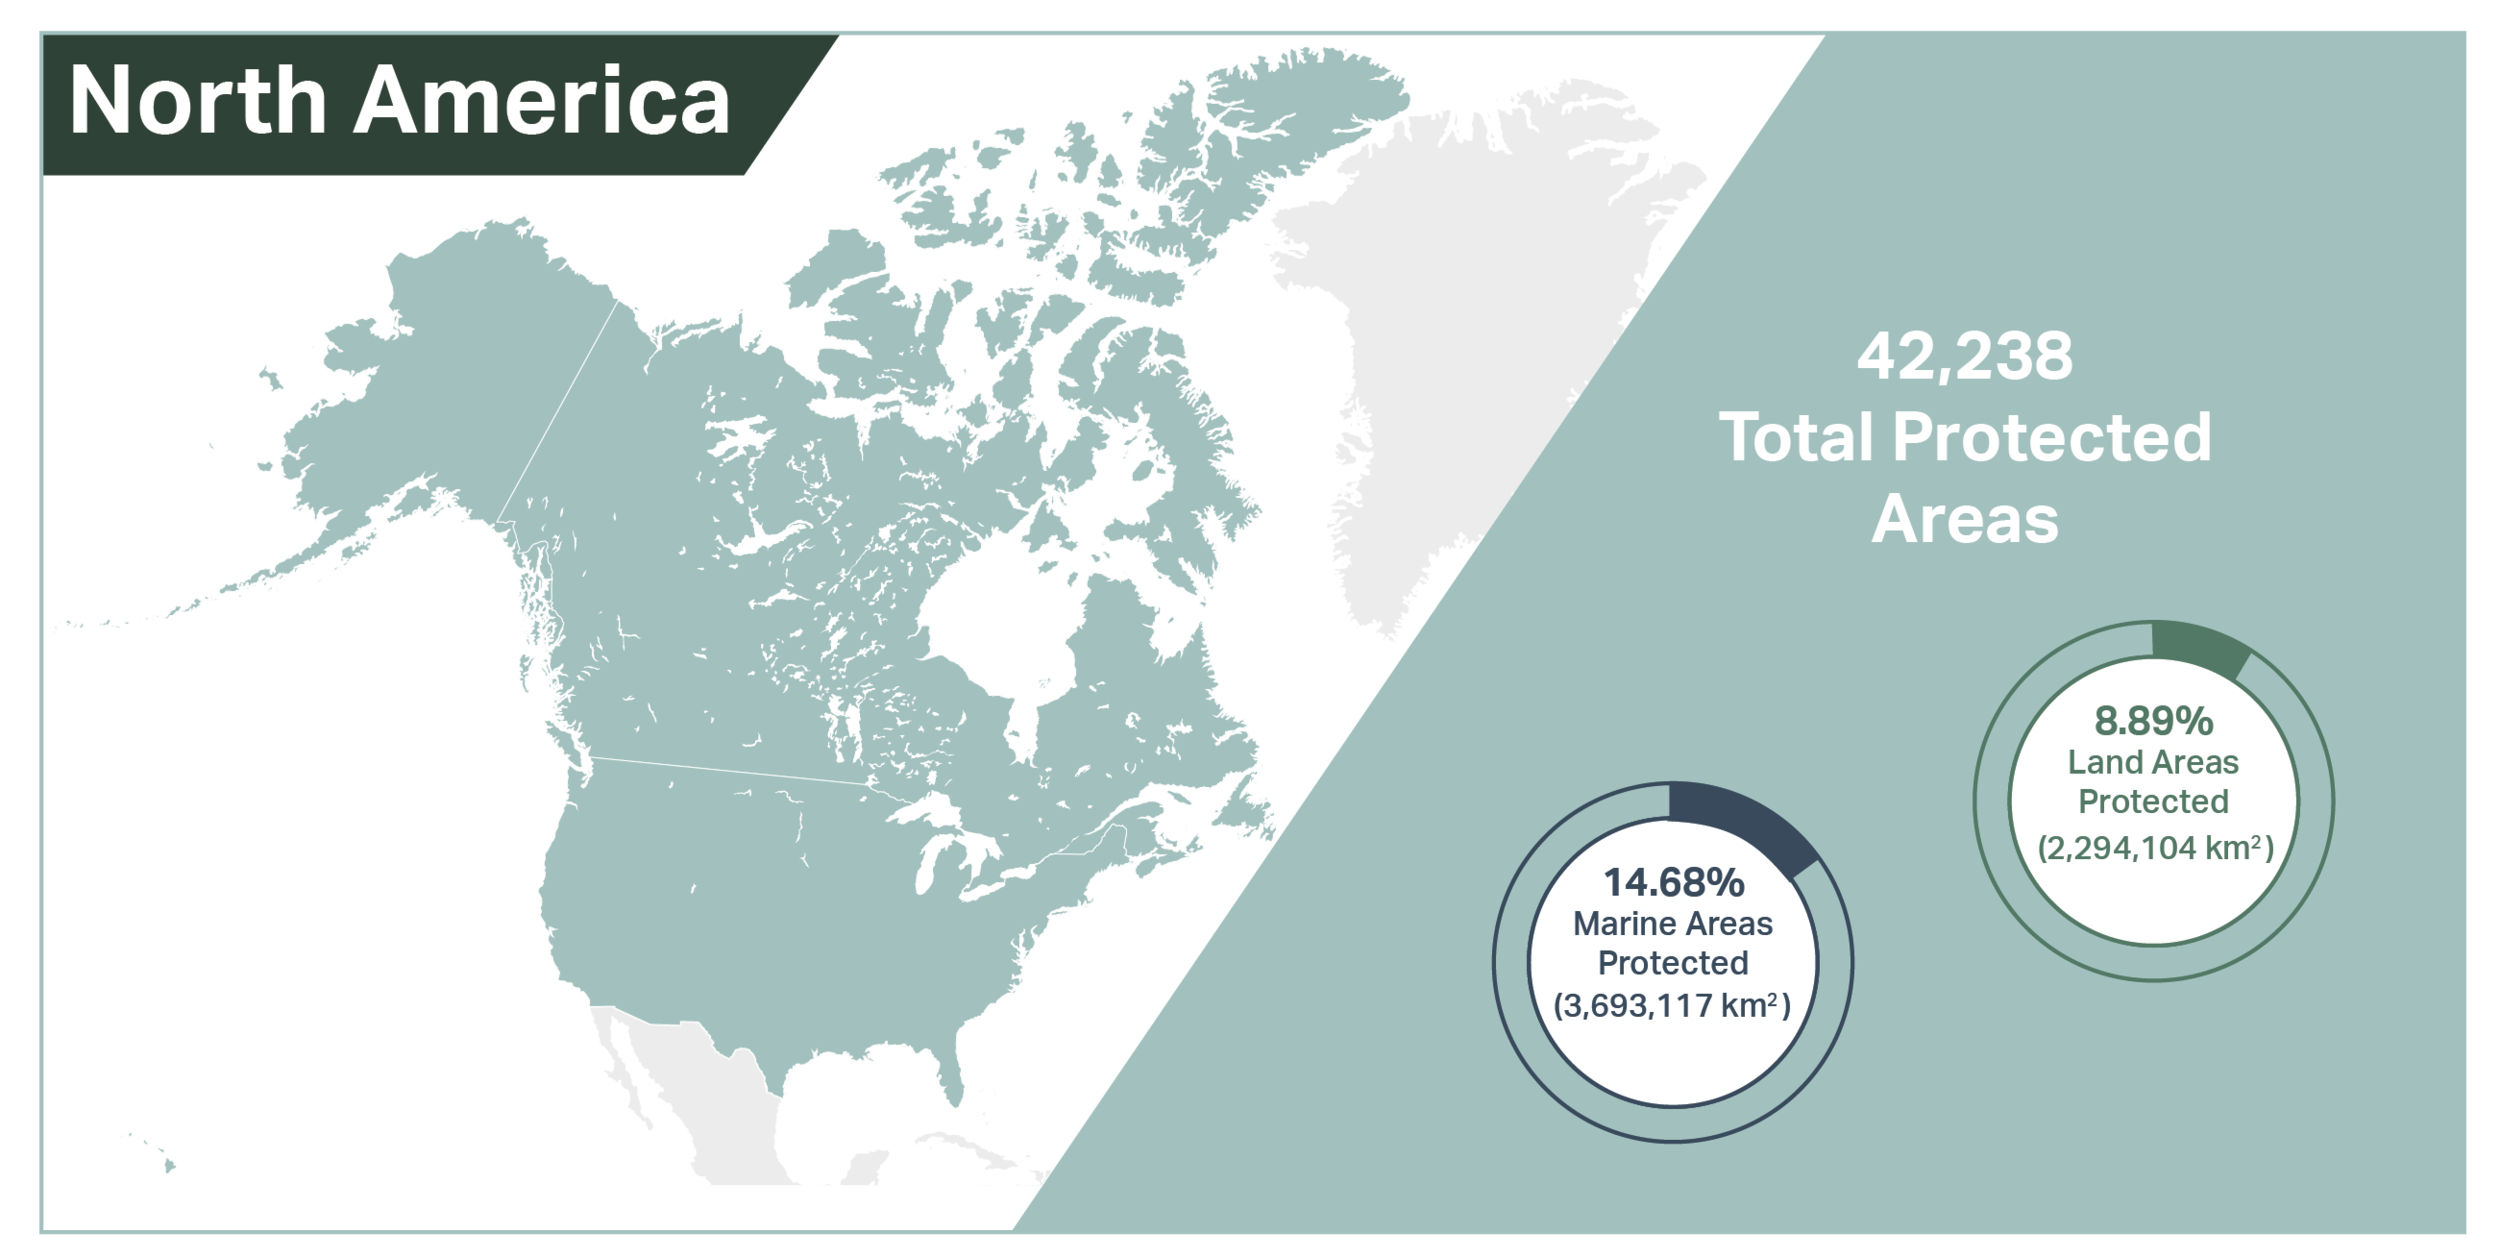 UNEP-WCMC (2019). Protected Area Profile for North America from the World Database of Protected Areas, October 2019. Available at:  www.protectedplanet.net